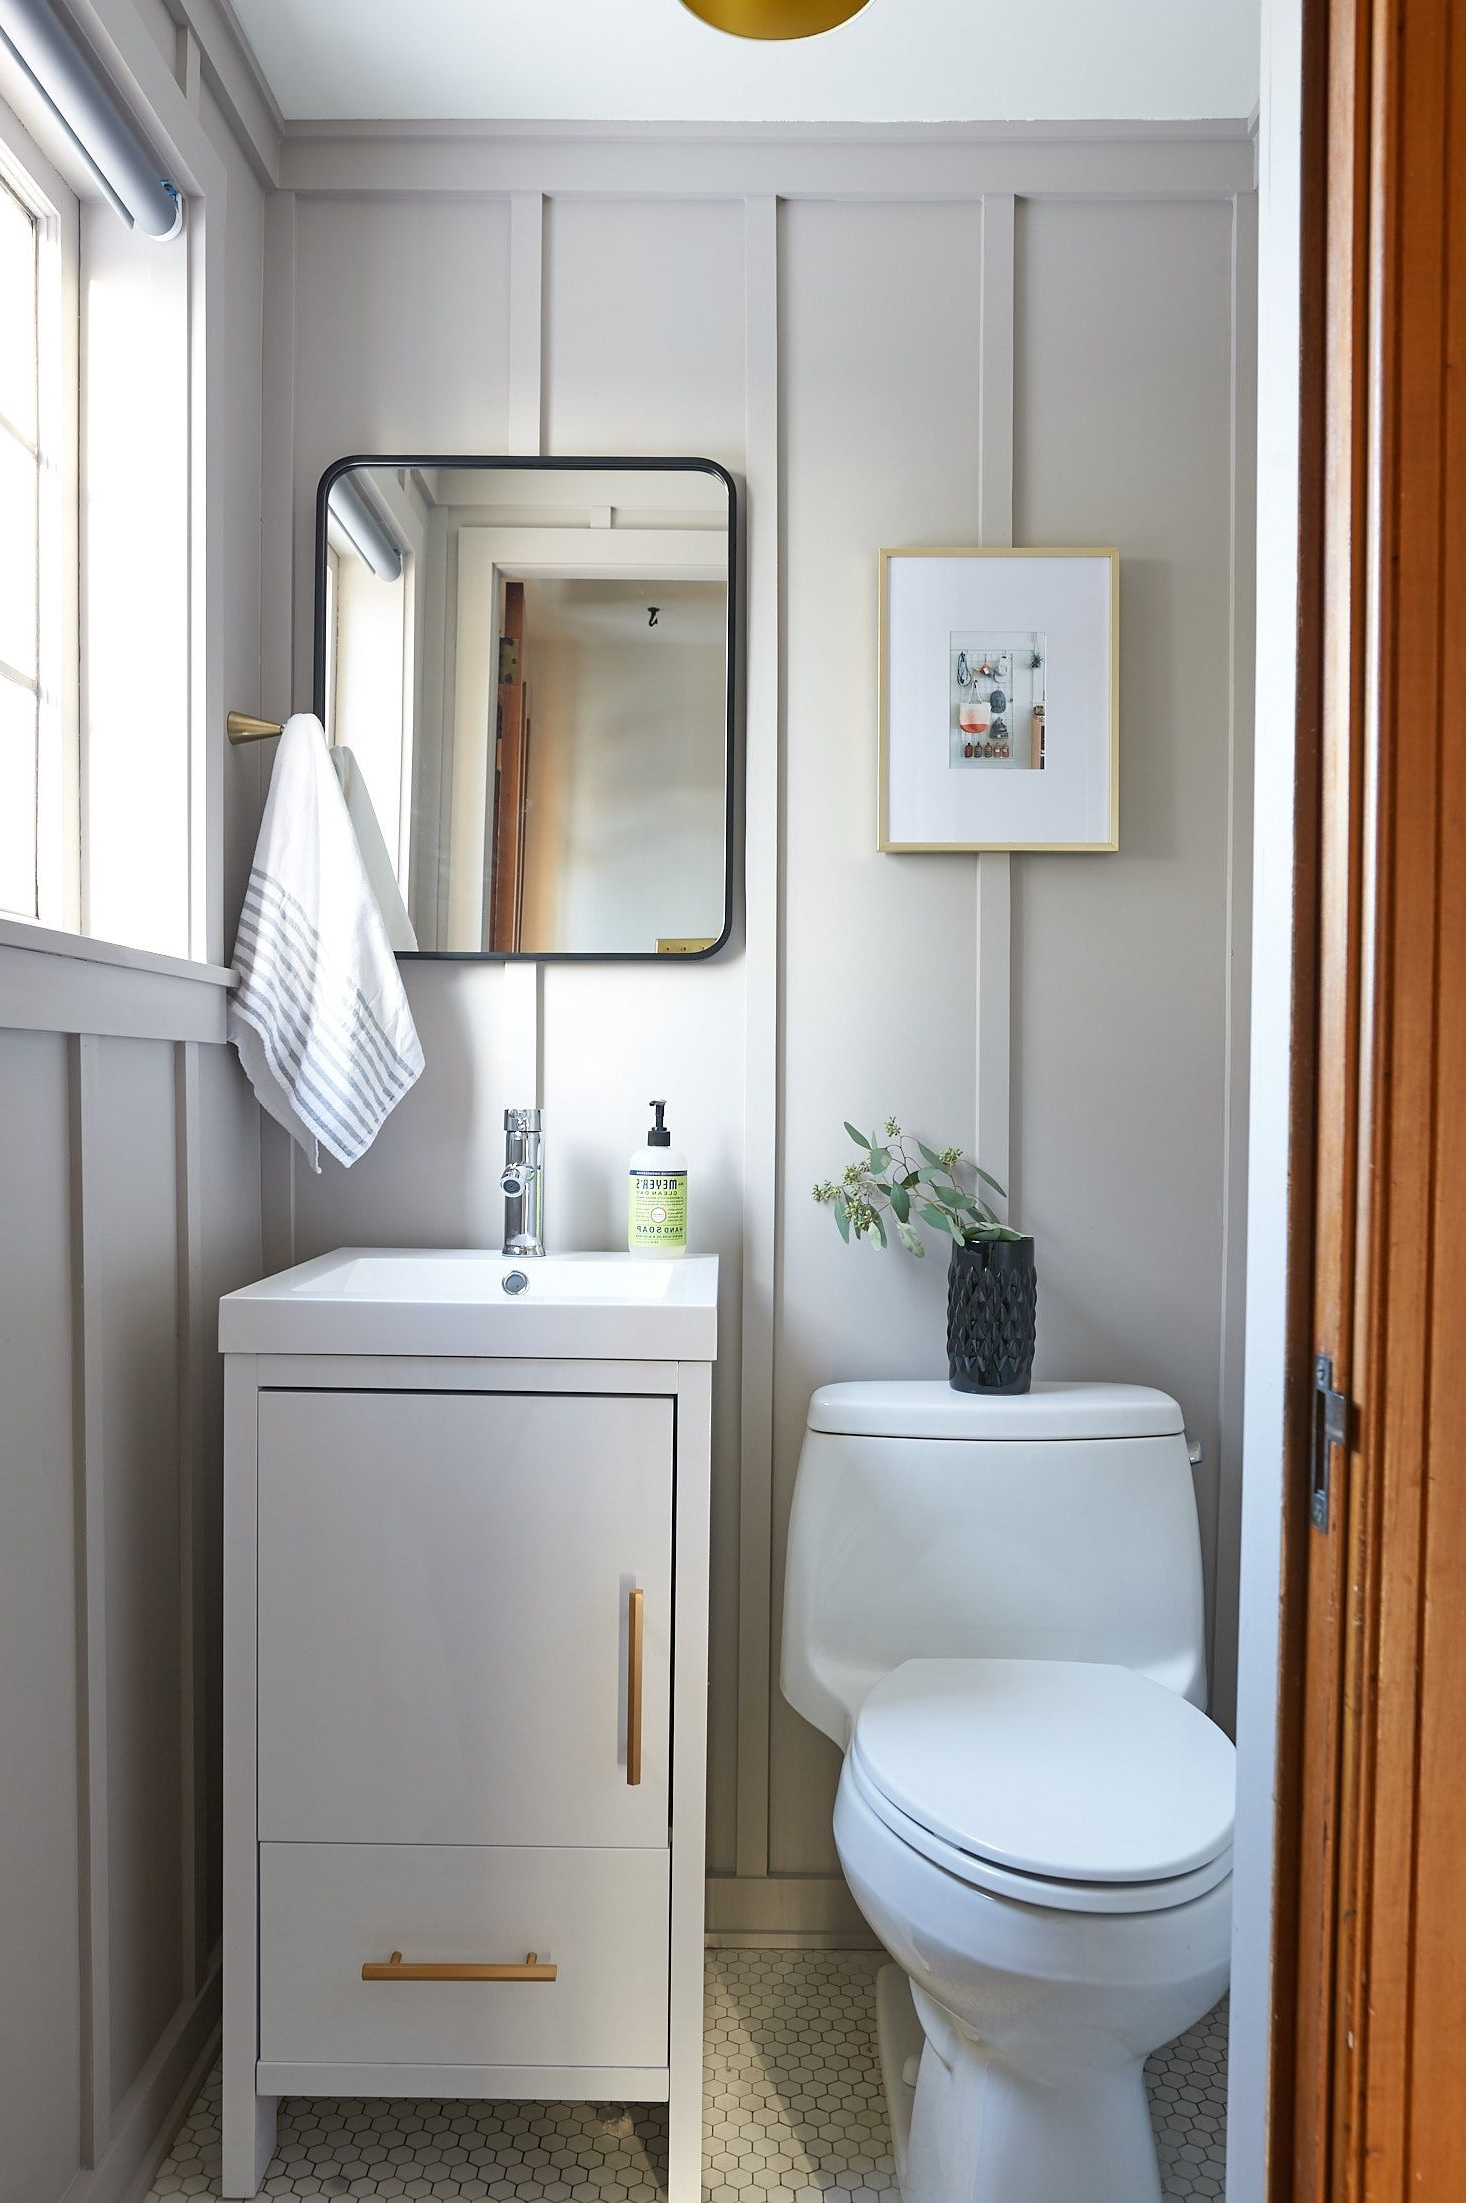 Powder Room Before + After   The Sweet Beast Blog   Powder Board And Batten In Small Bathroom